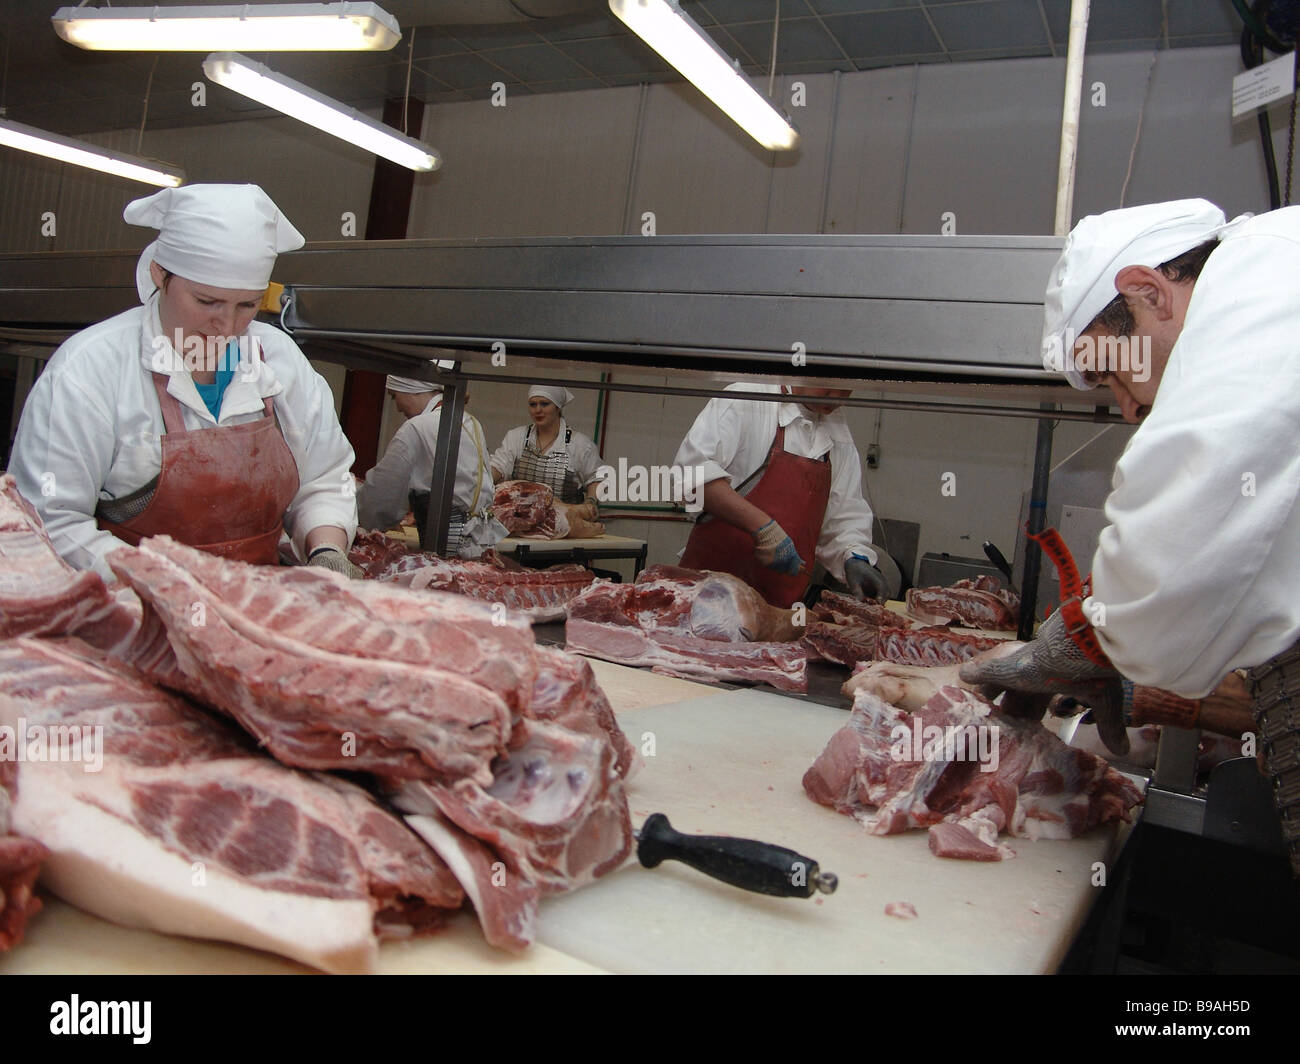 The Omsk Bacon factory Meat processing shop 47 - Stock Image